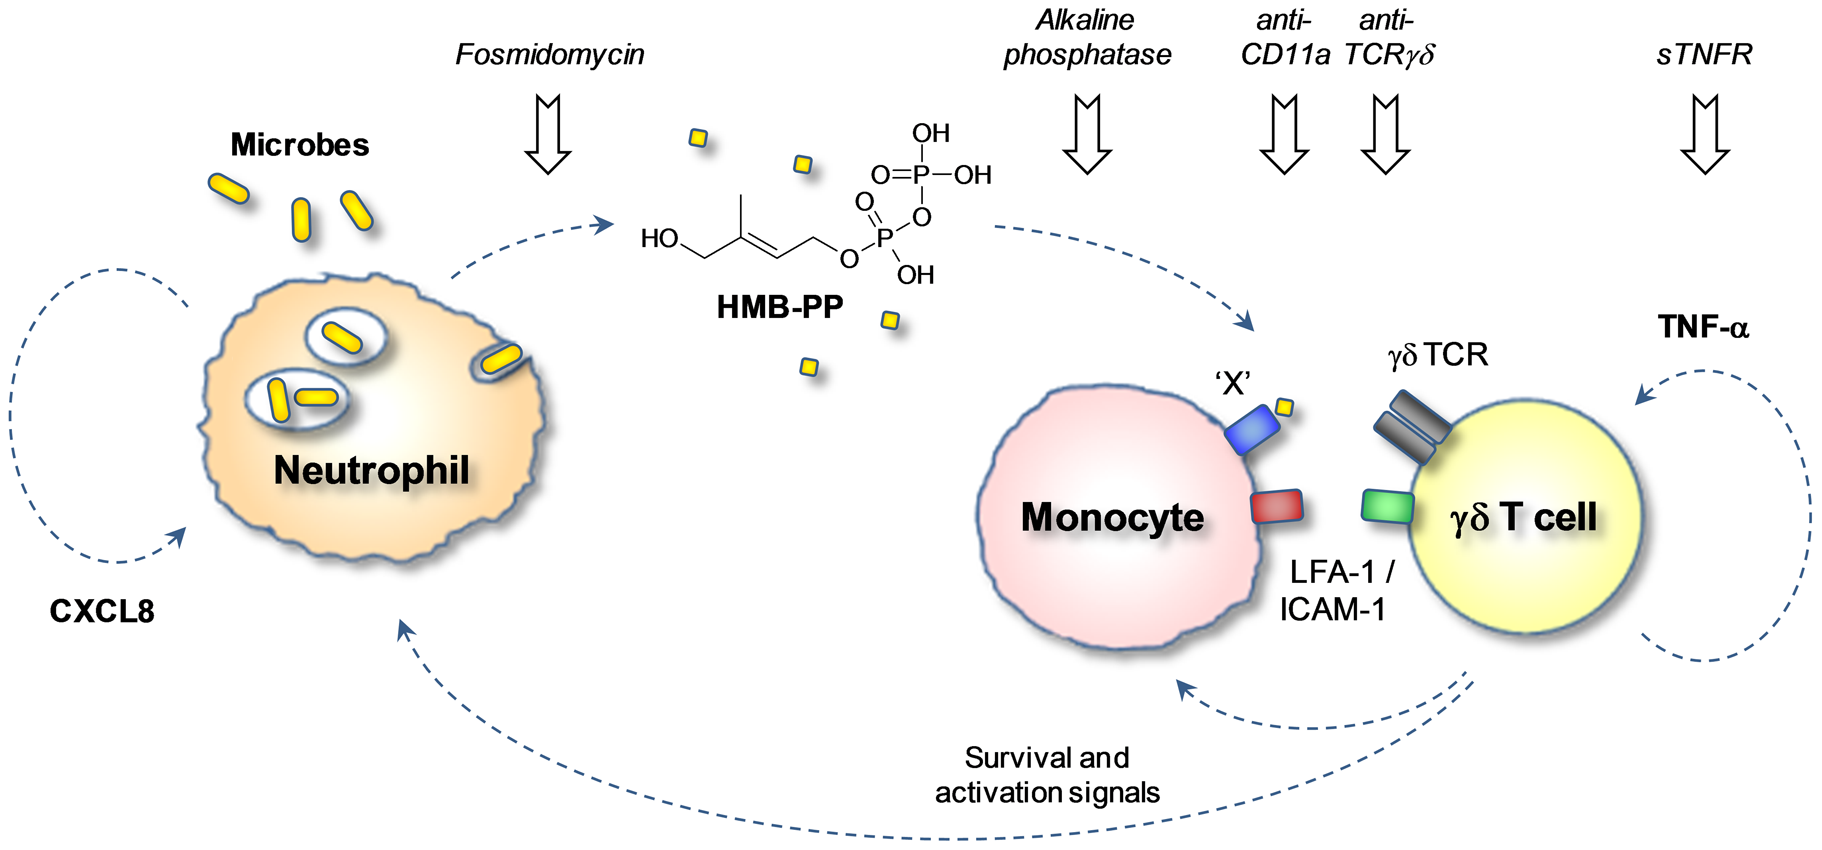 HMB-PP dependent interaction between γδ T cells, neutrophils and monocytes in acute microbial infection.